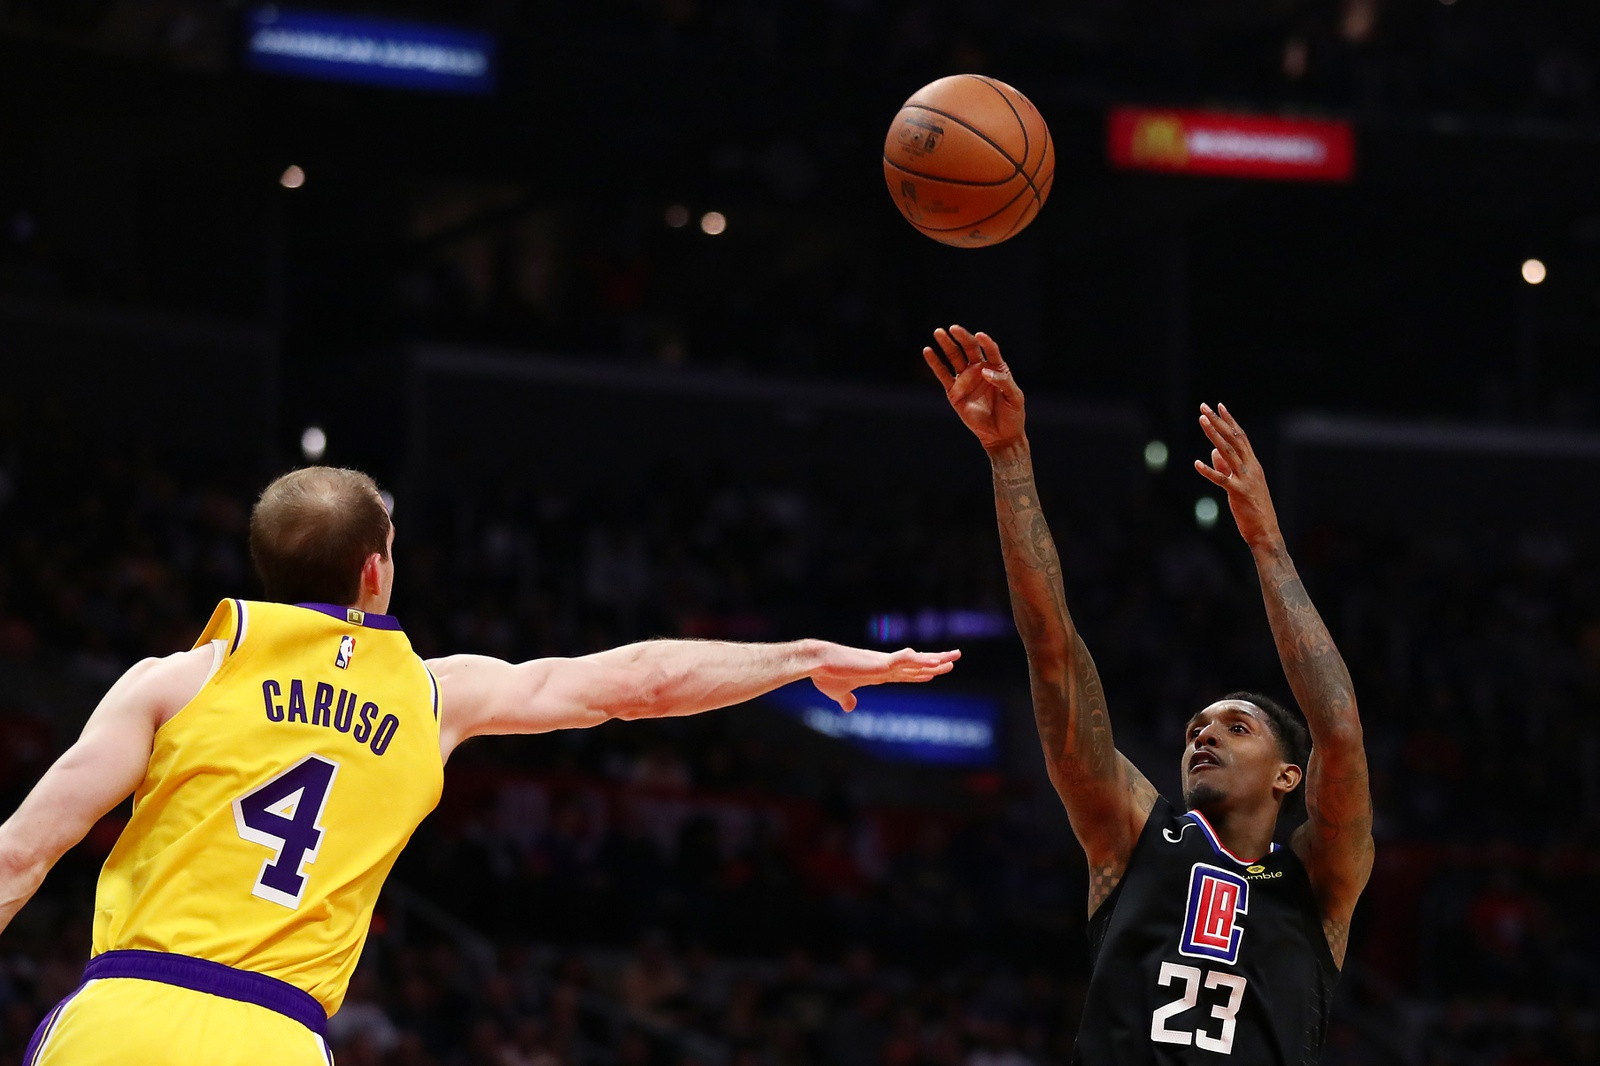 Lou Williams #23 of the Los Angeles Clippers shoots the ball against Alex Caruso #4 of the Los Angeles Lakers during the second half at Staples Center on April 05, 2019 in Los Angeles, California.